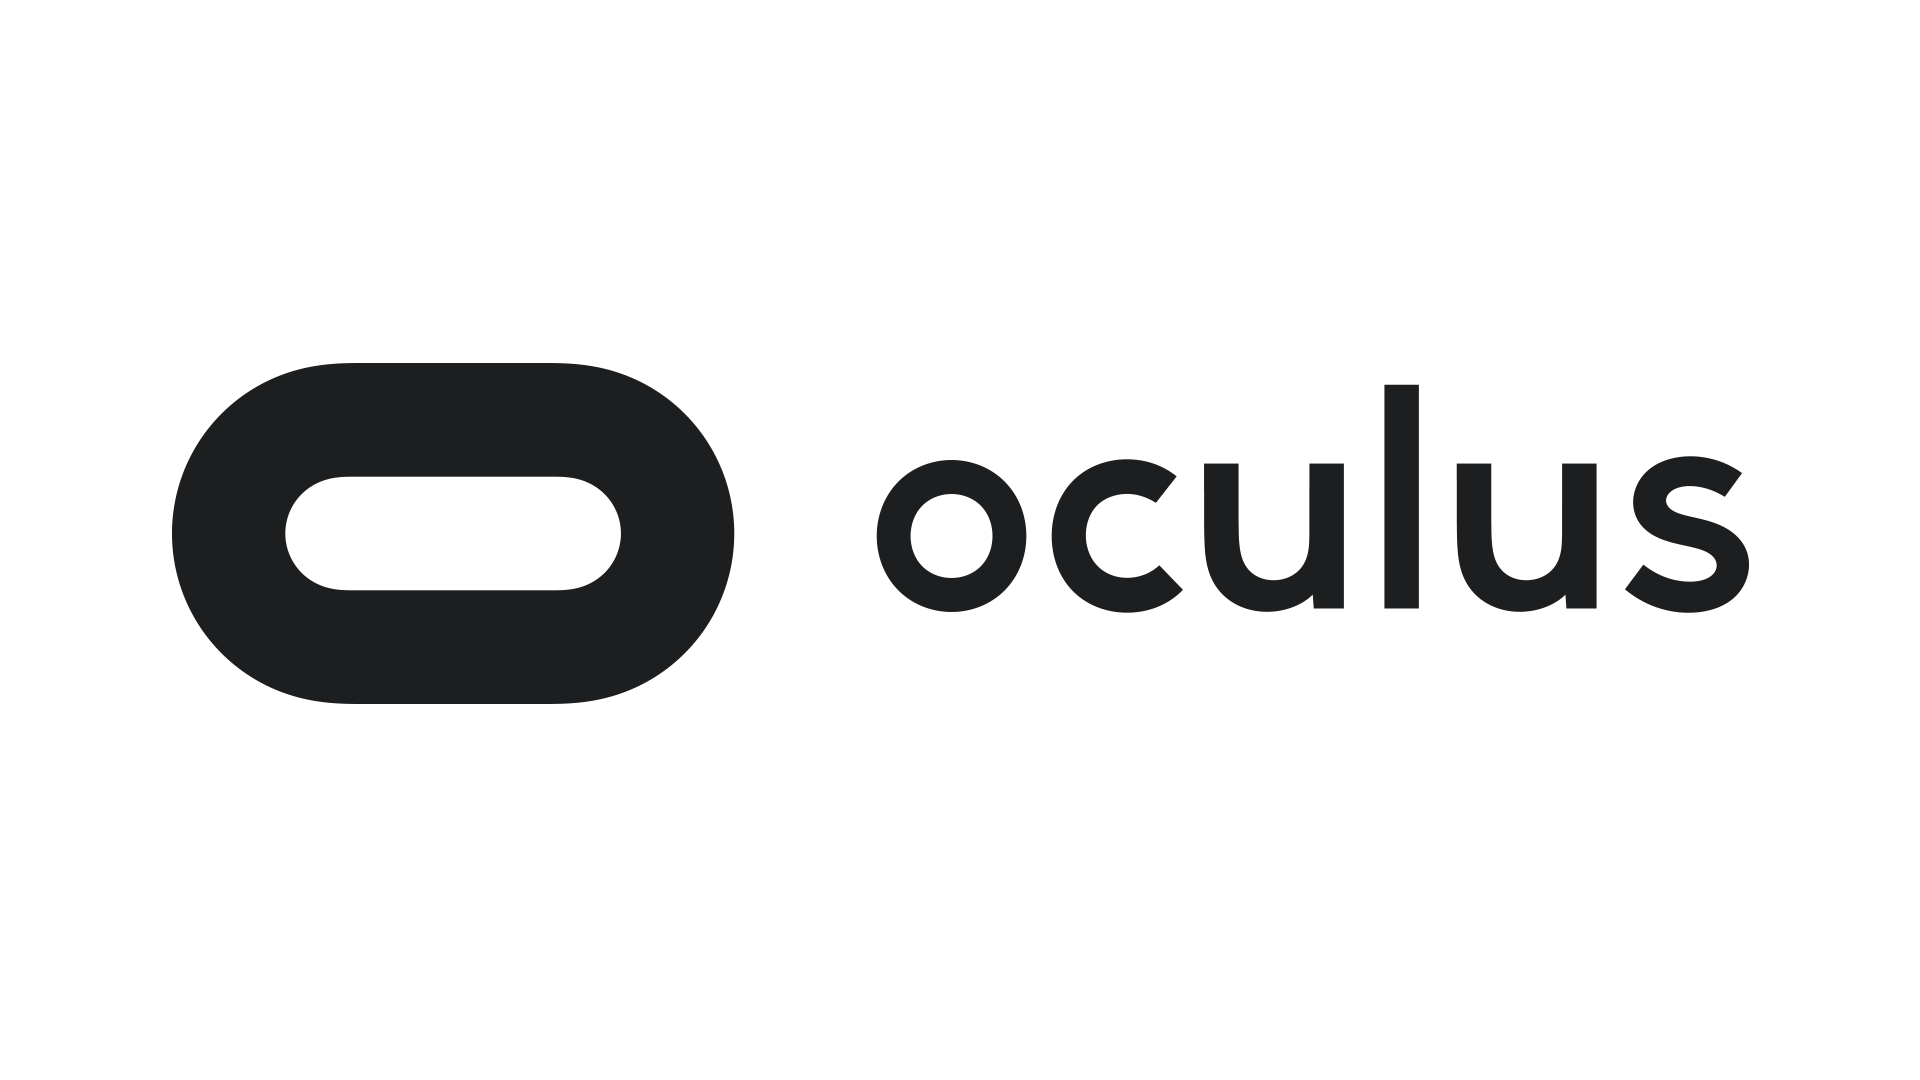 Oculus rift logo clipart jpg library library Oculus logo clipart images gallery for free download | MyReal clip ... jpg library library